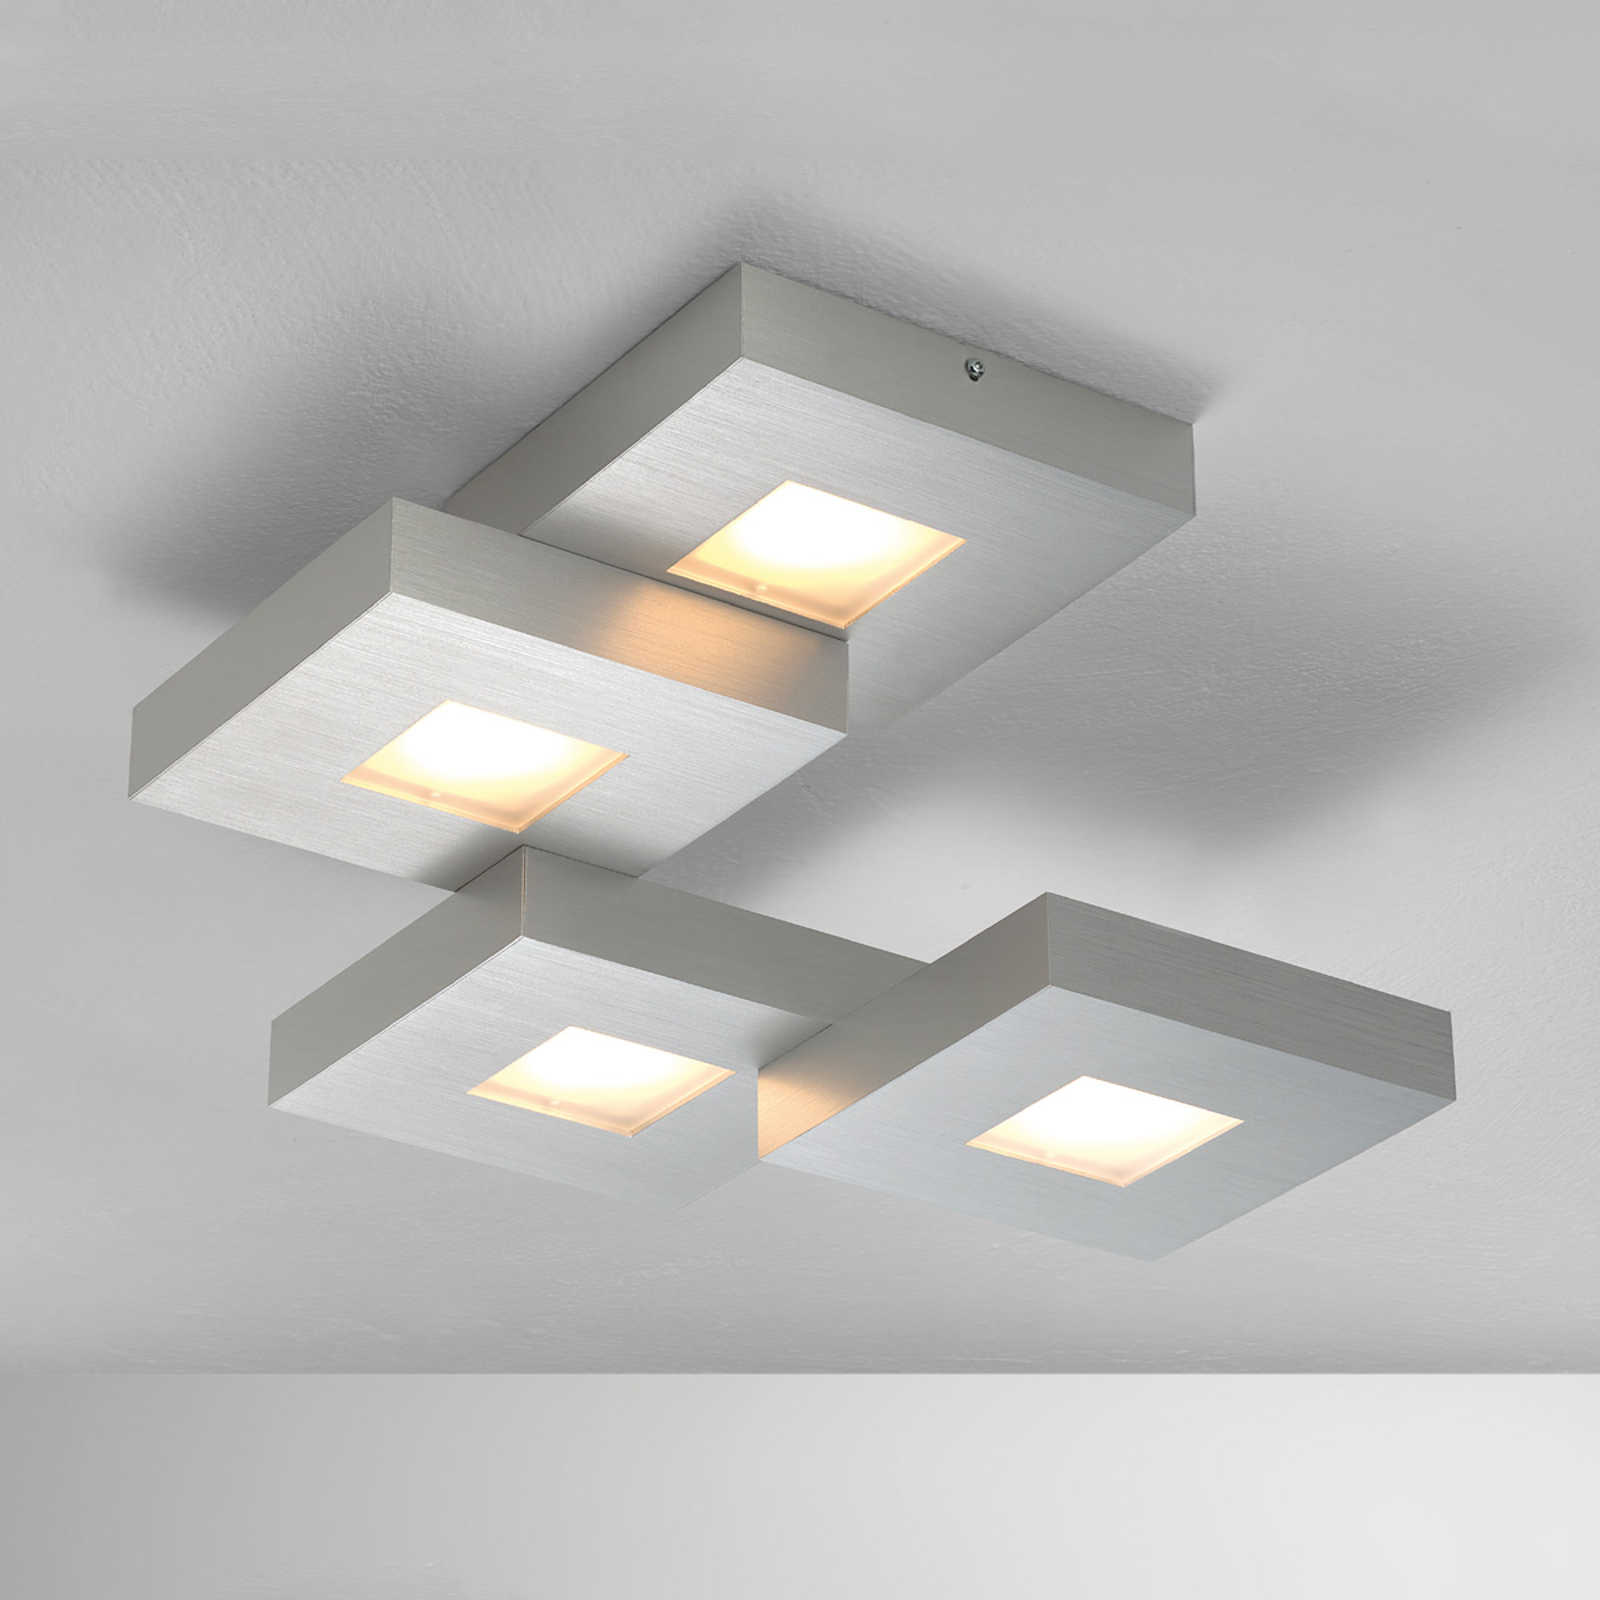 LED ceiling light Cubus with a staircase design_1556045_1